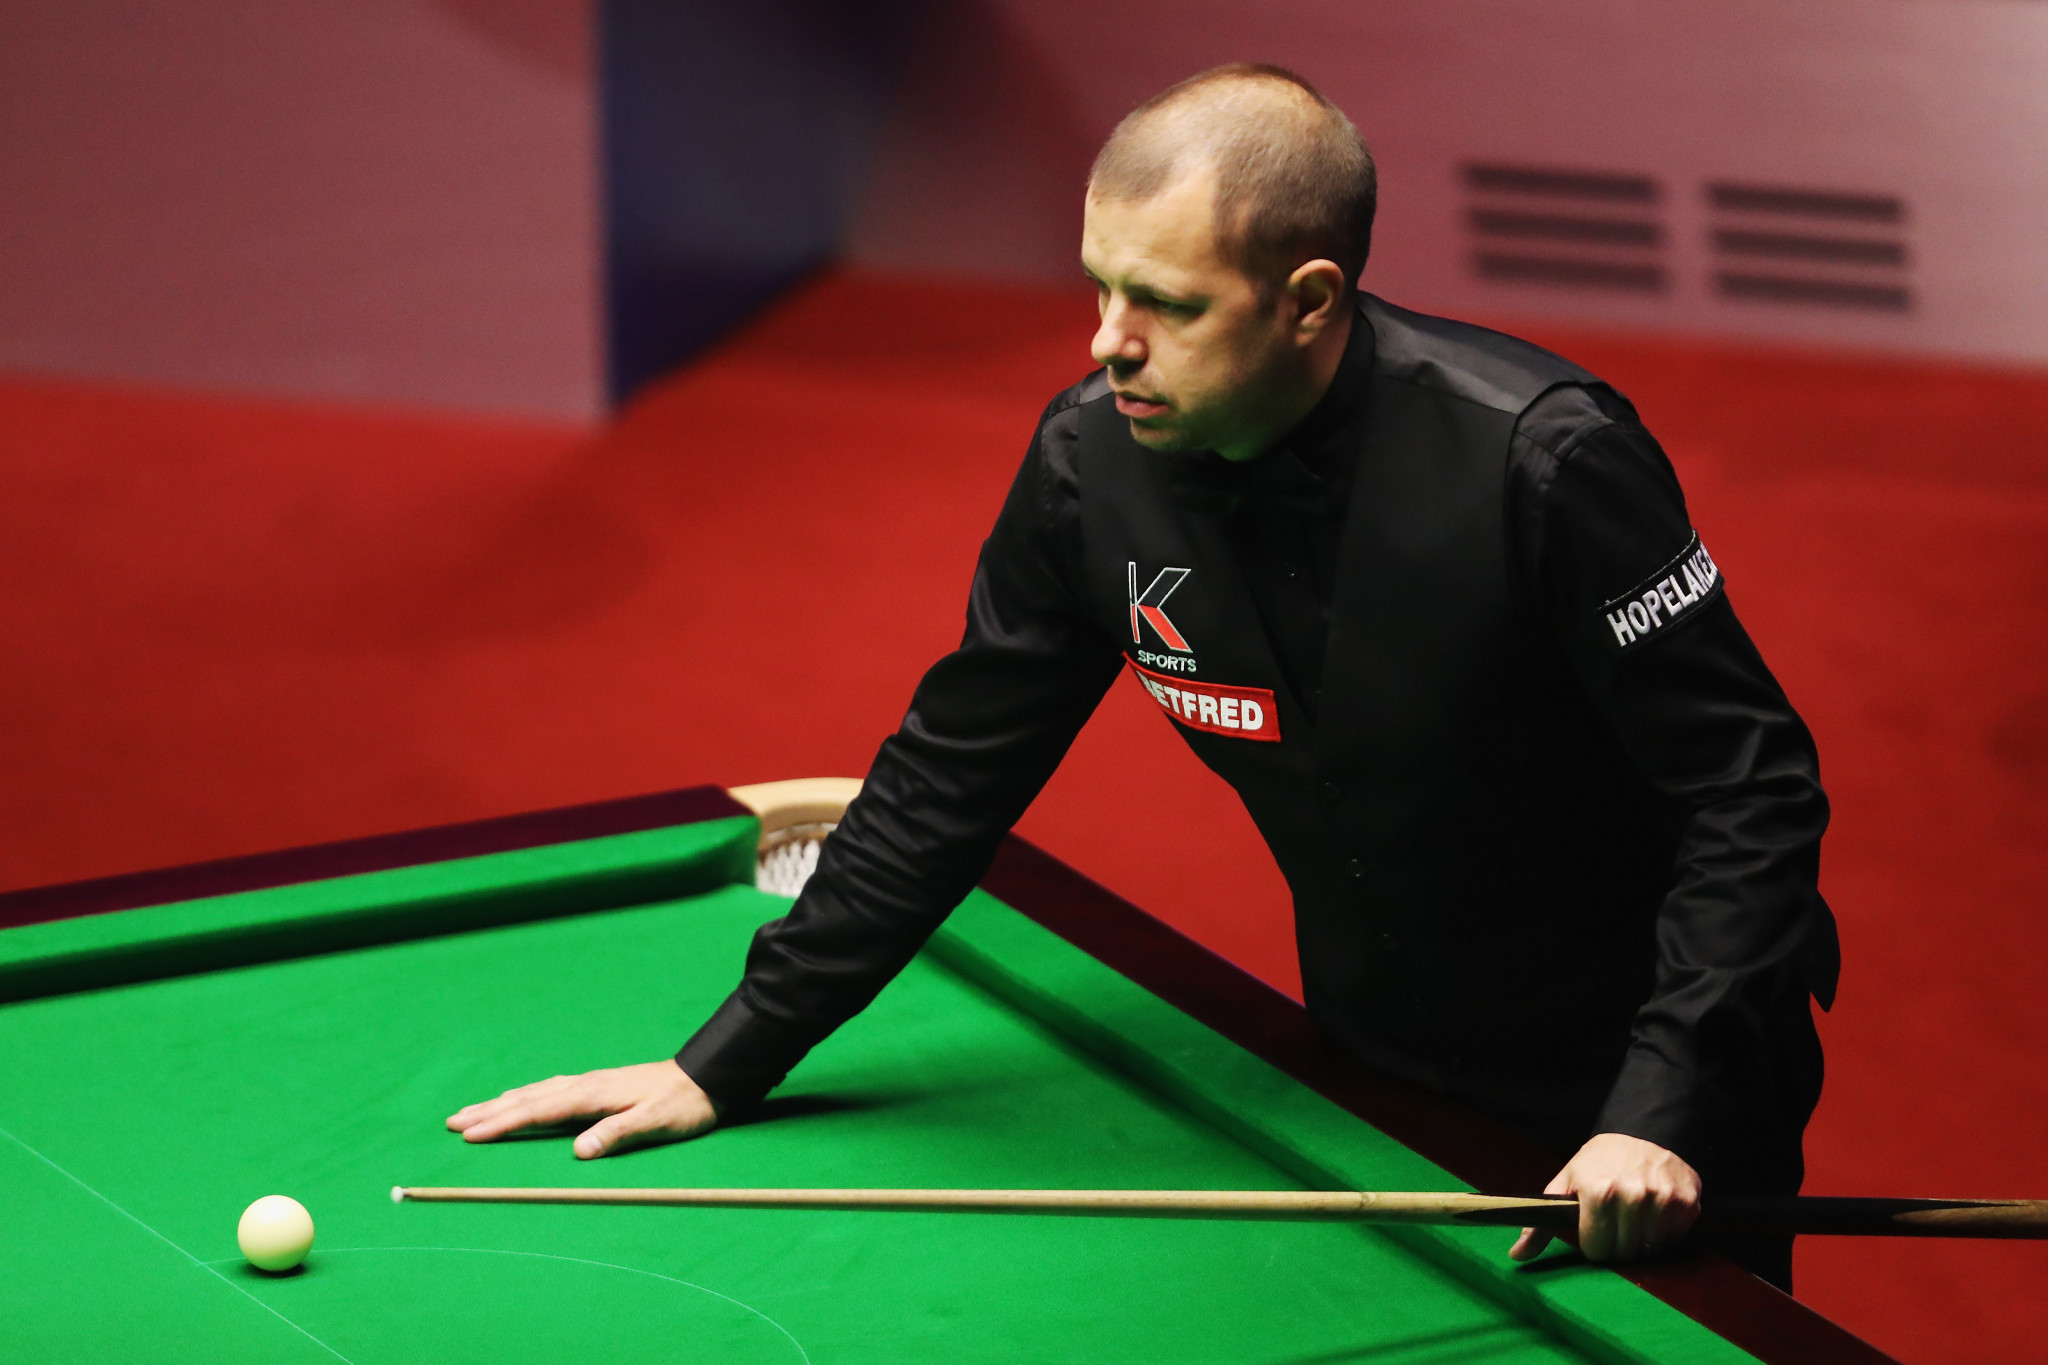 England'sBarry Hawkins will have a two frame lead over Wales' Mark Williams going into tomorrow in their semi-final of the World Snooker Championship in Sheffield ©Getty Images